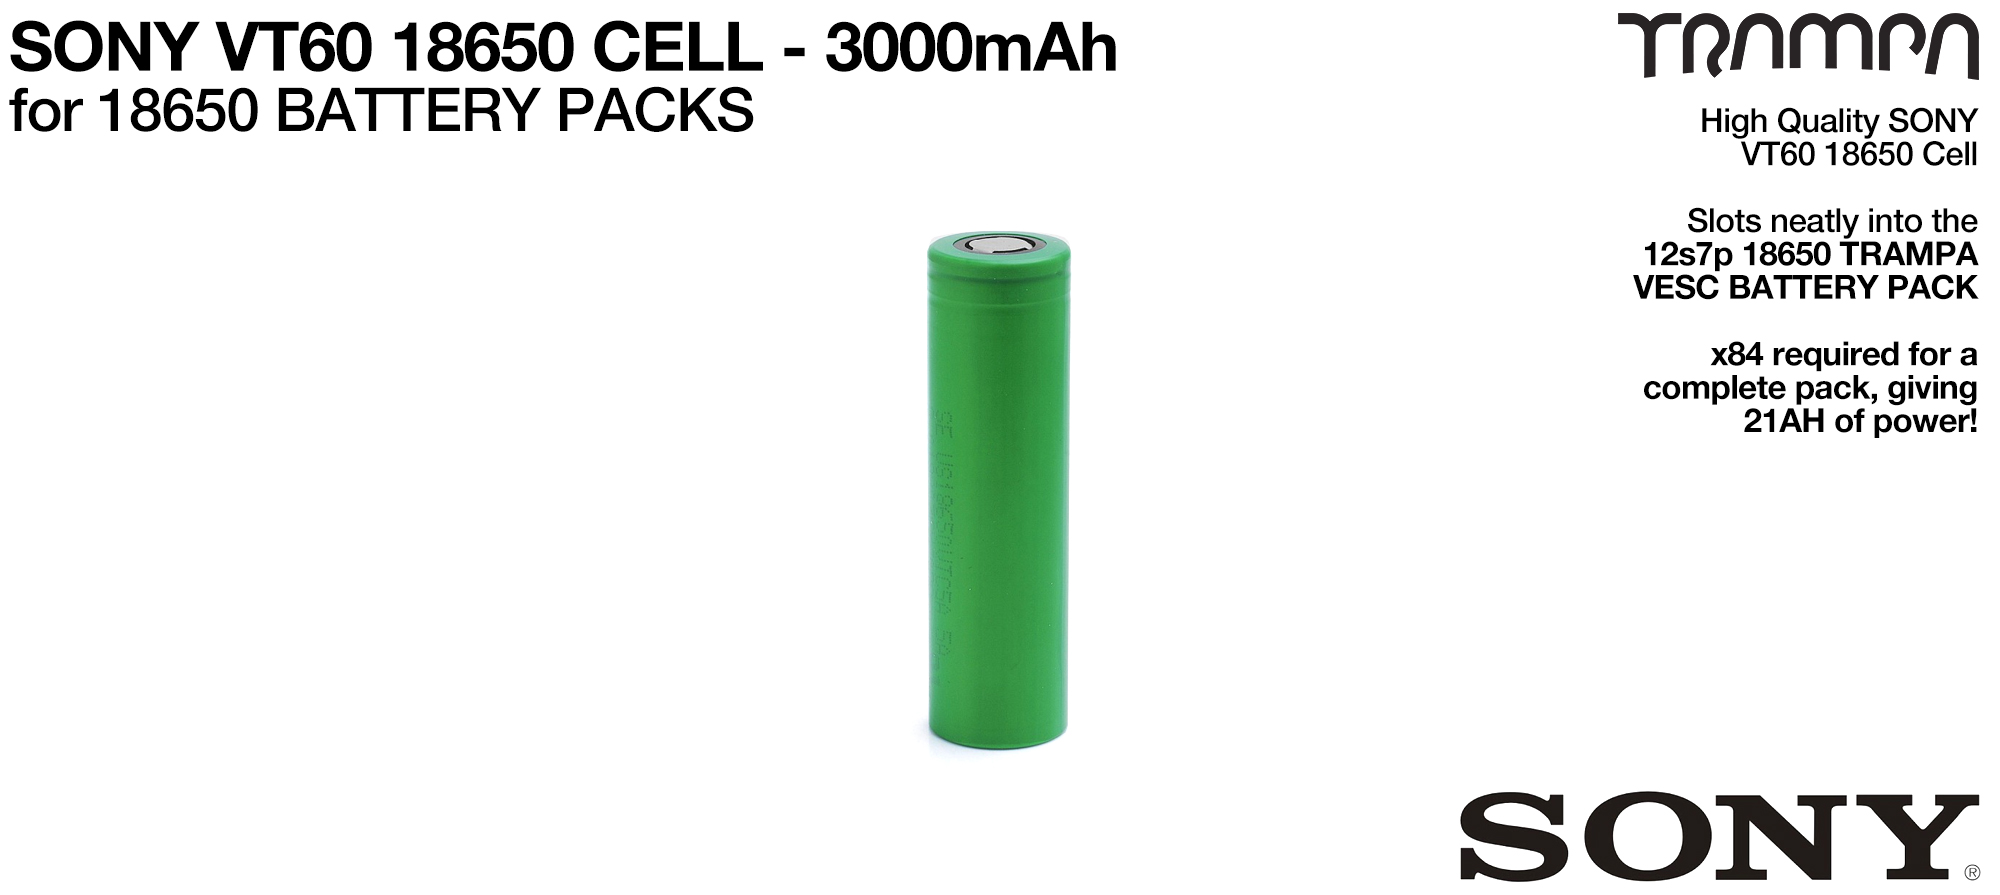 Please supply me with SONY VTC6 3000 mAh 18650 Cells (+£350)